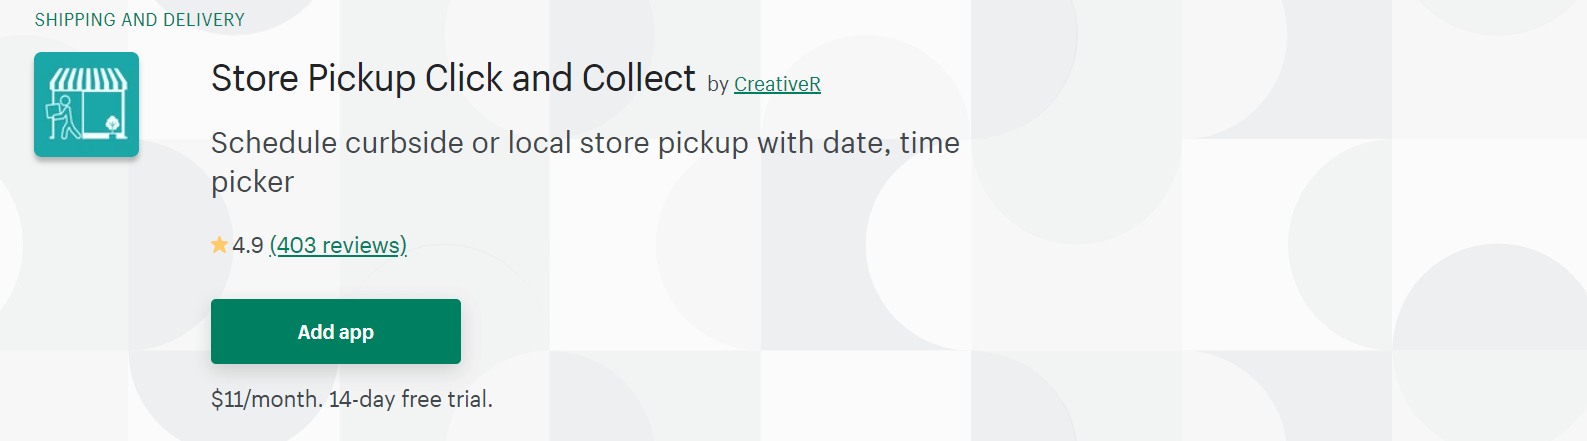 A screenshot of CreativeR`s Store Pickup Click and Collect app Shopify page.